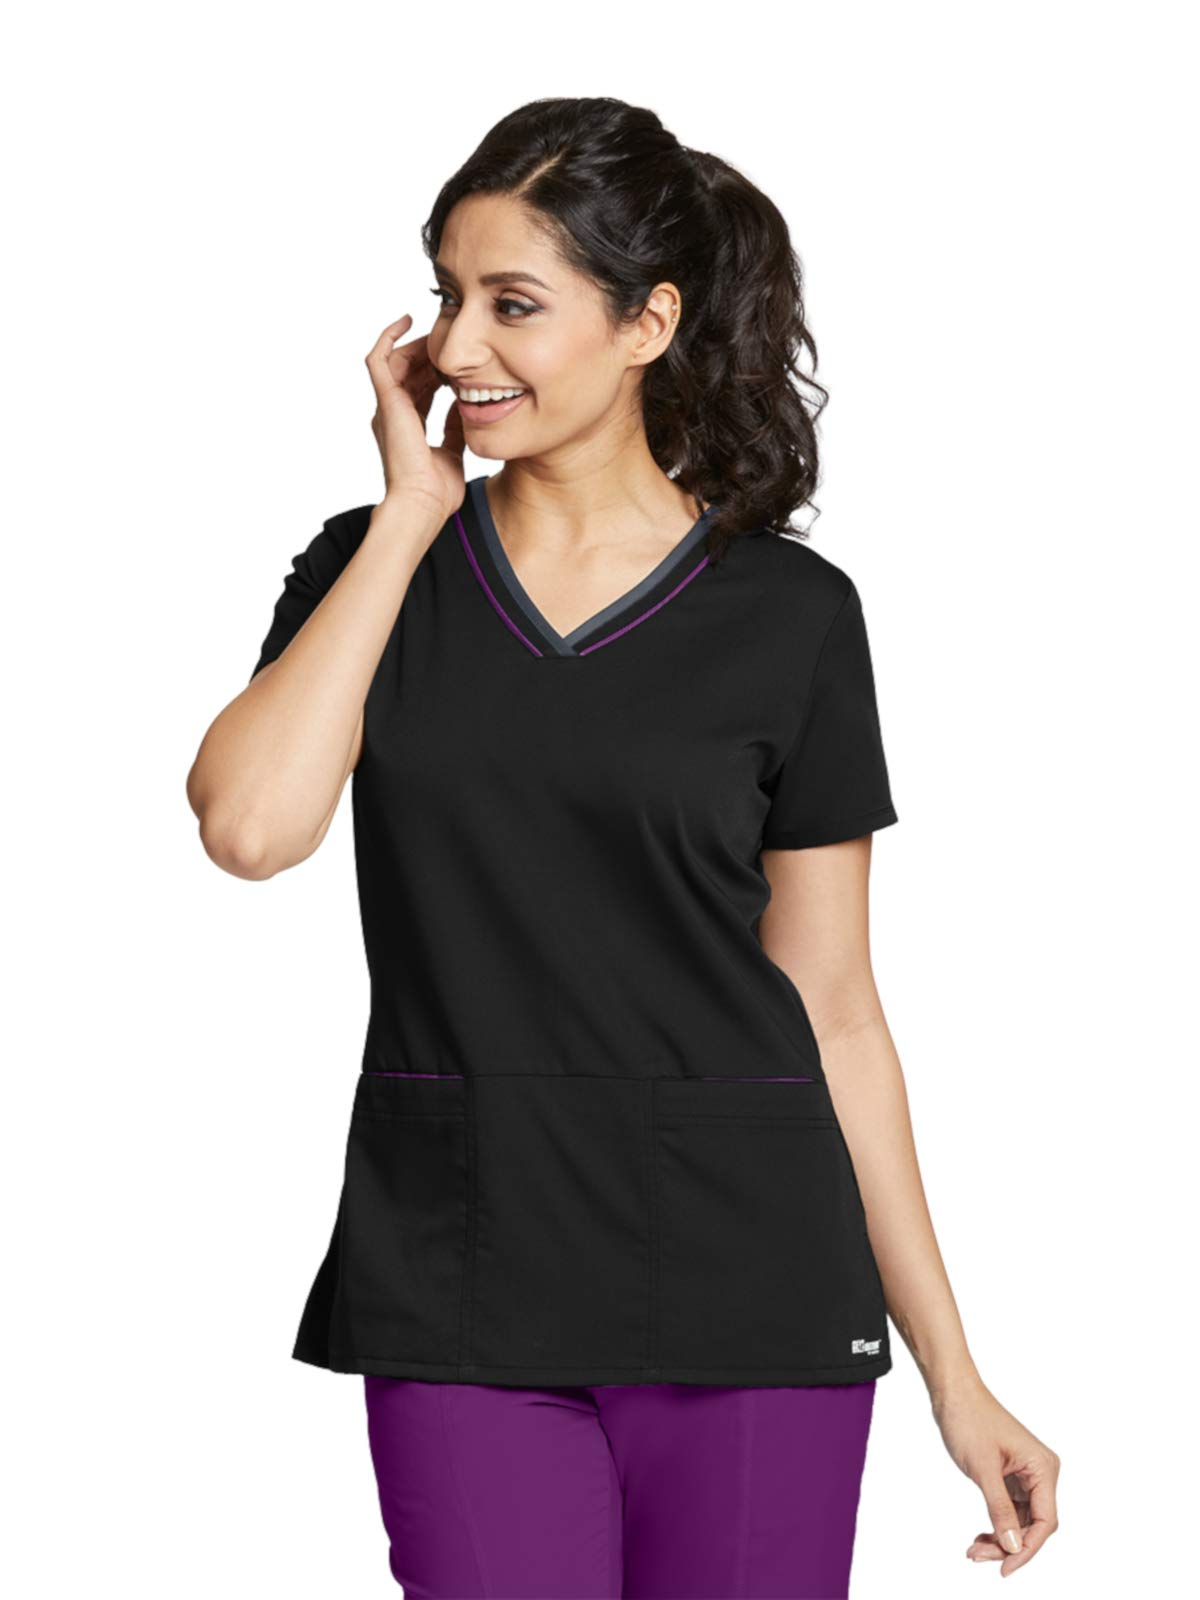 Grey's Anatomy Active 41466 Color Block V-Neck Top Black/Very Berry/Granite XS by Barco (Image #1)